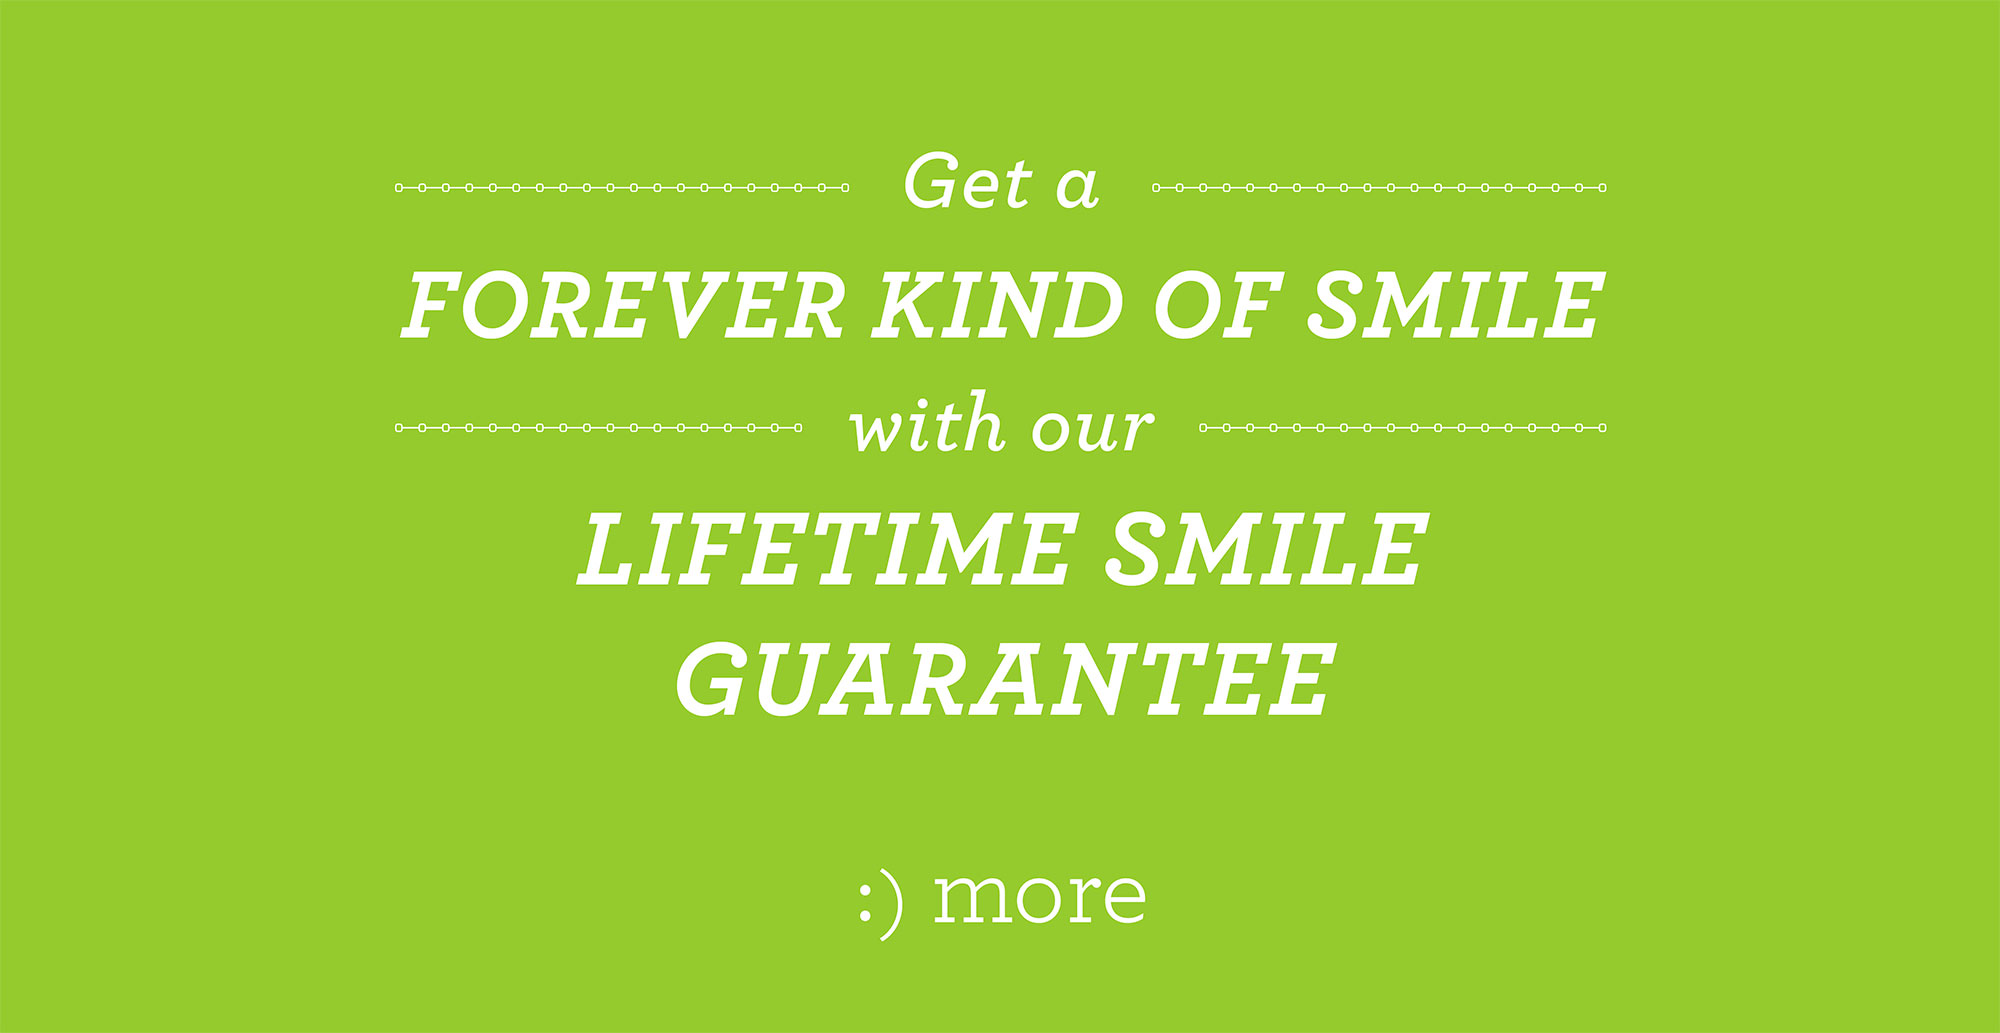 lifetime smile guarantee